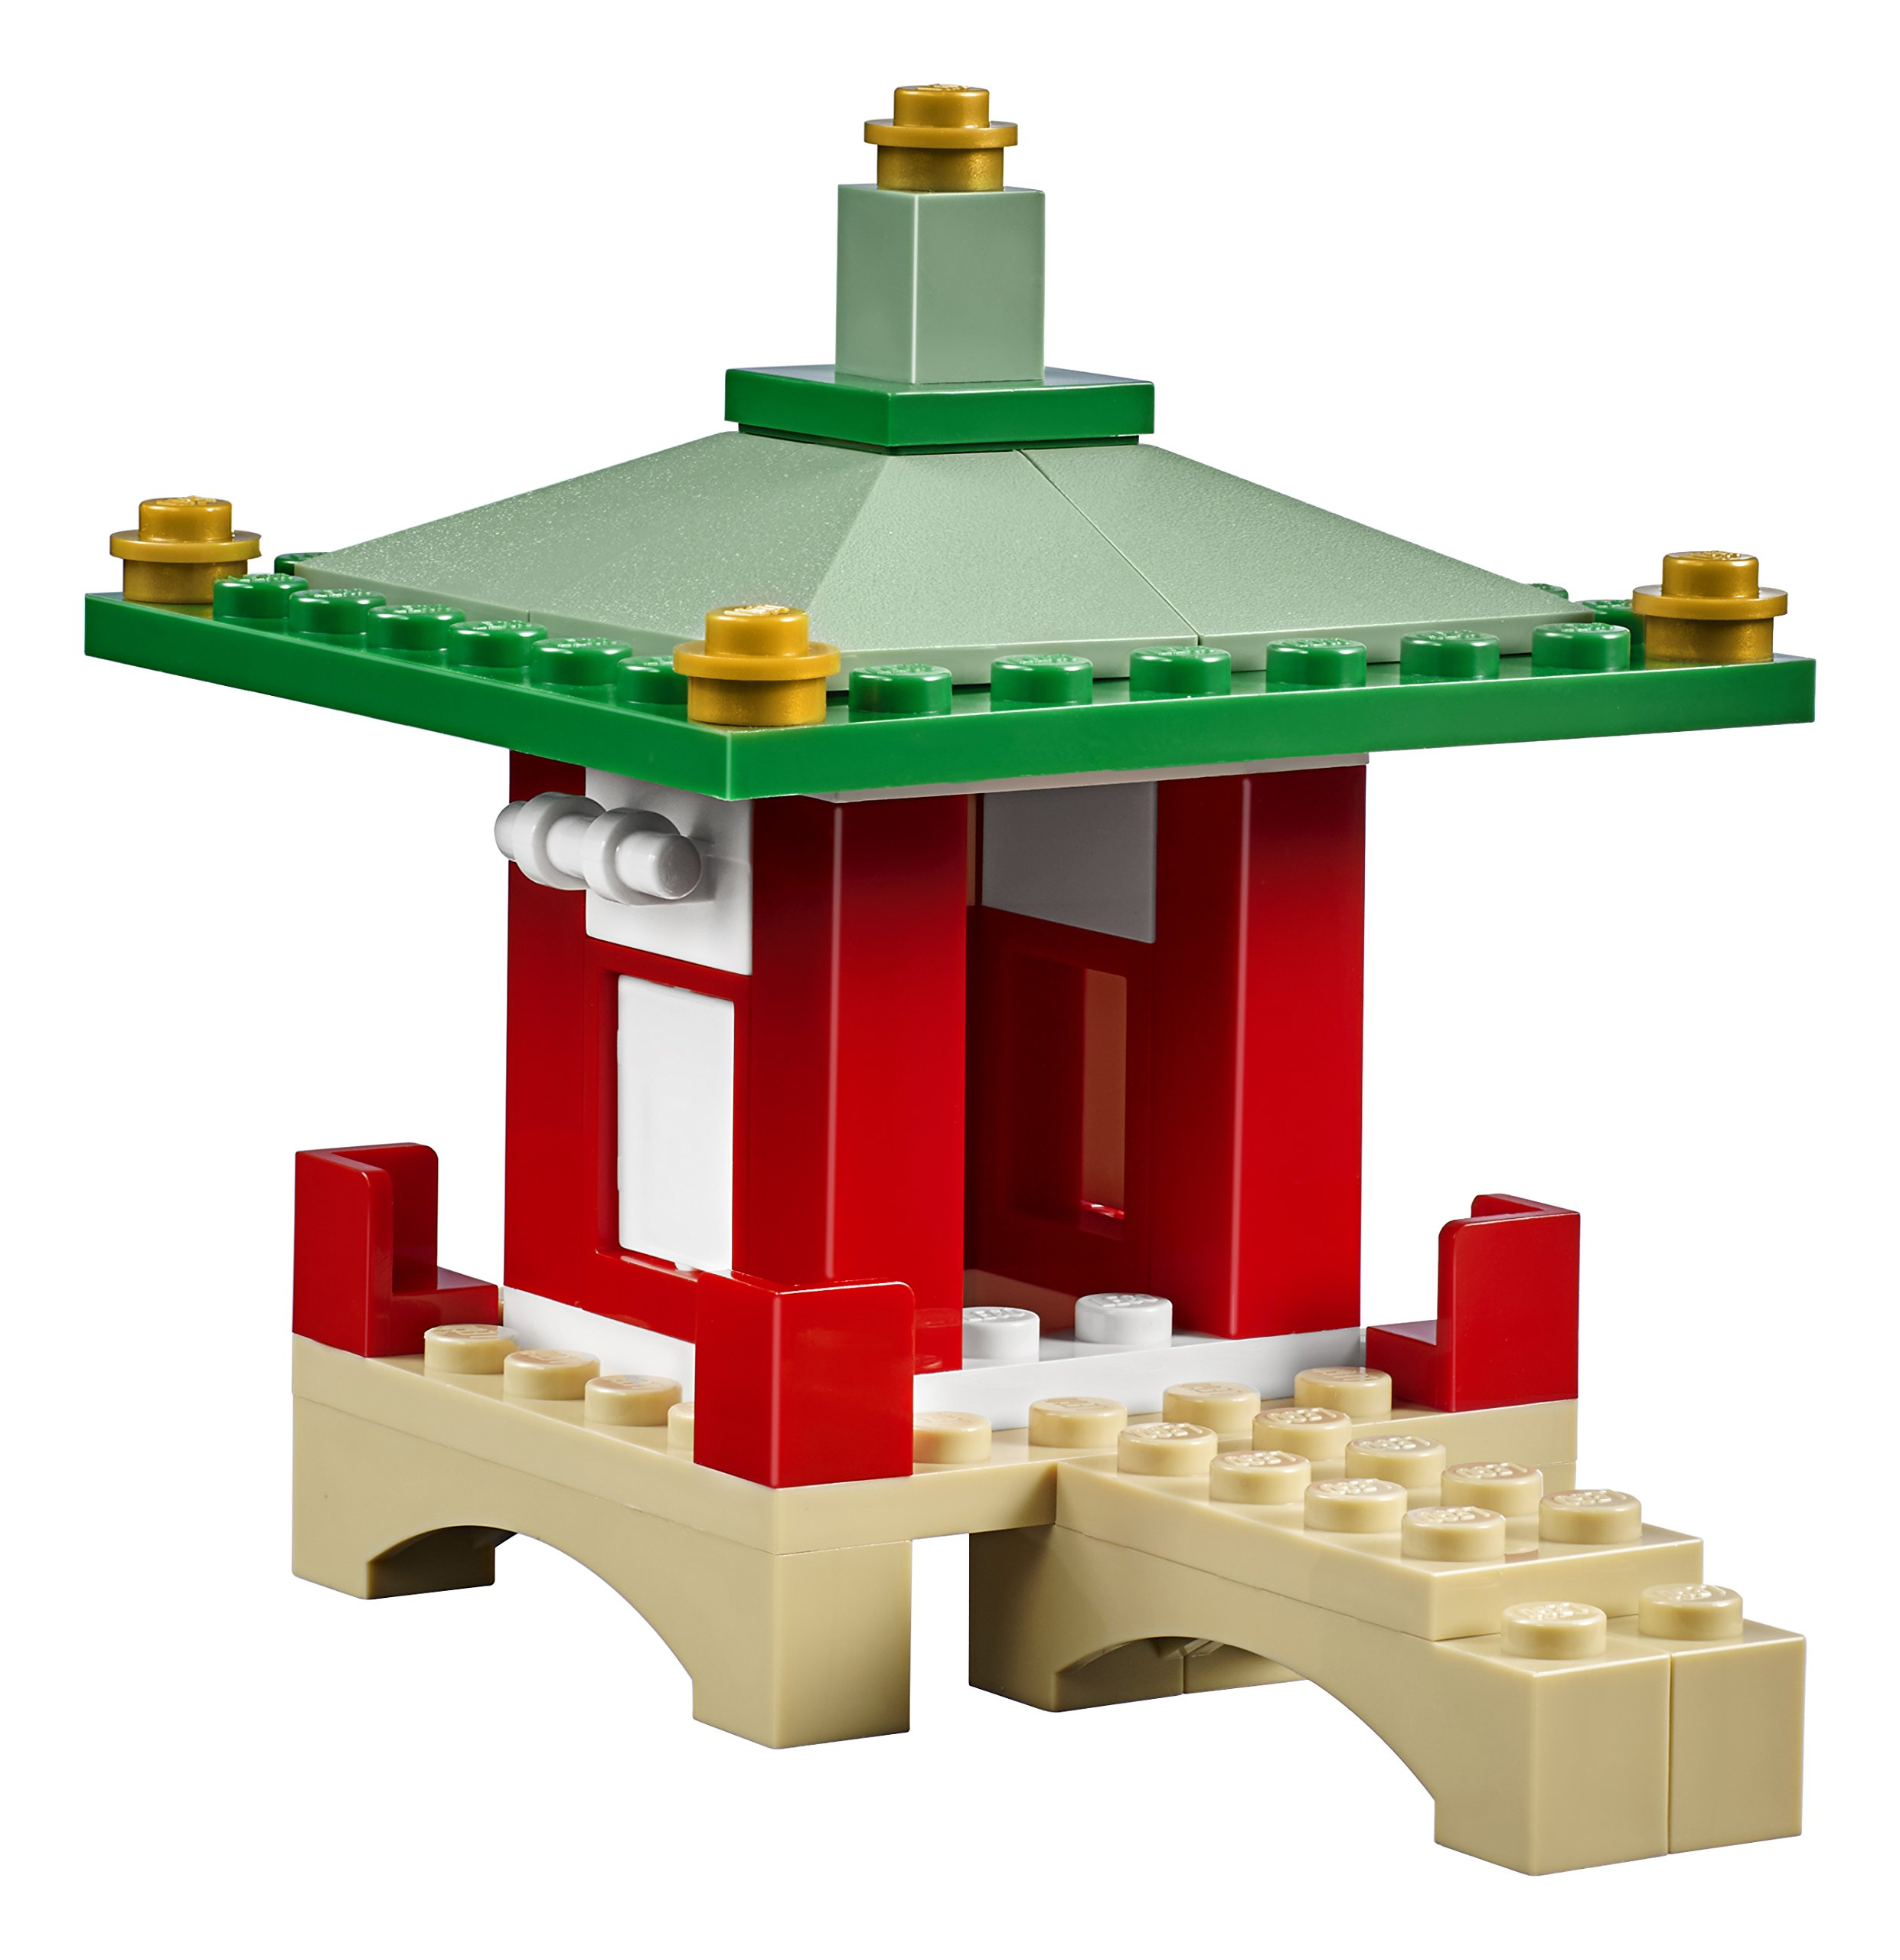 LEGO Classic Creative Builder Box 10703 (Exclusive) by LEGO (Image #8)